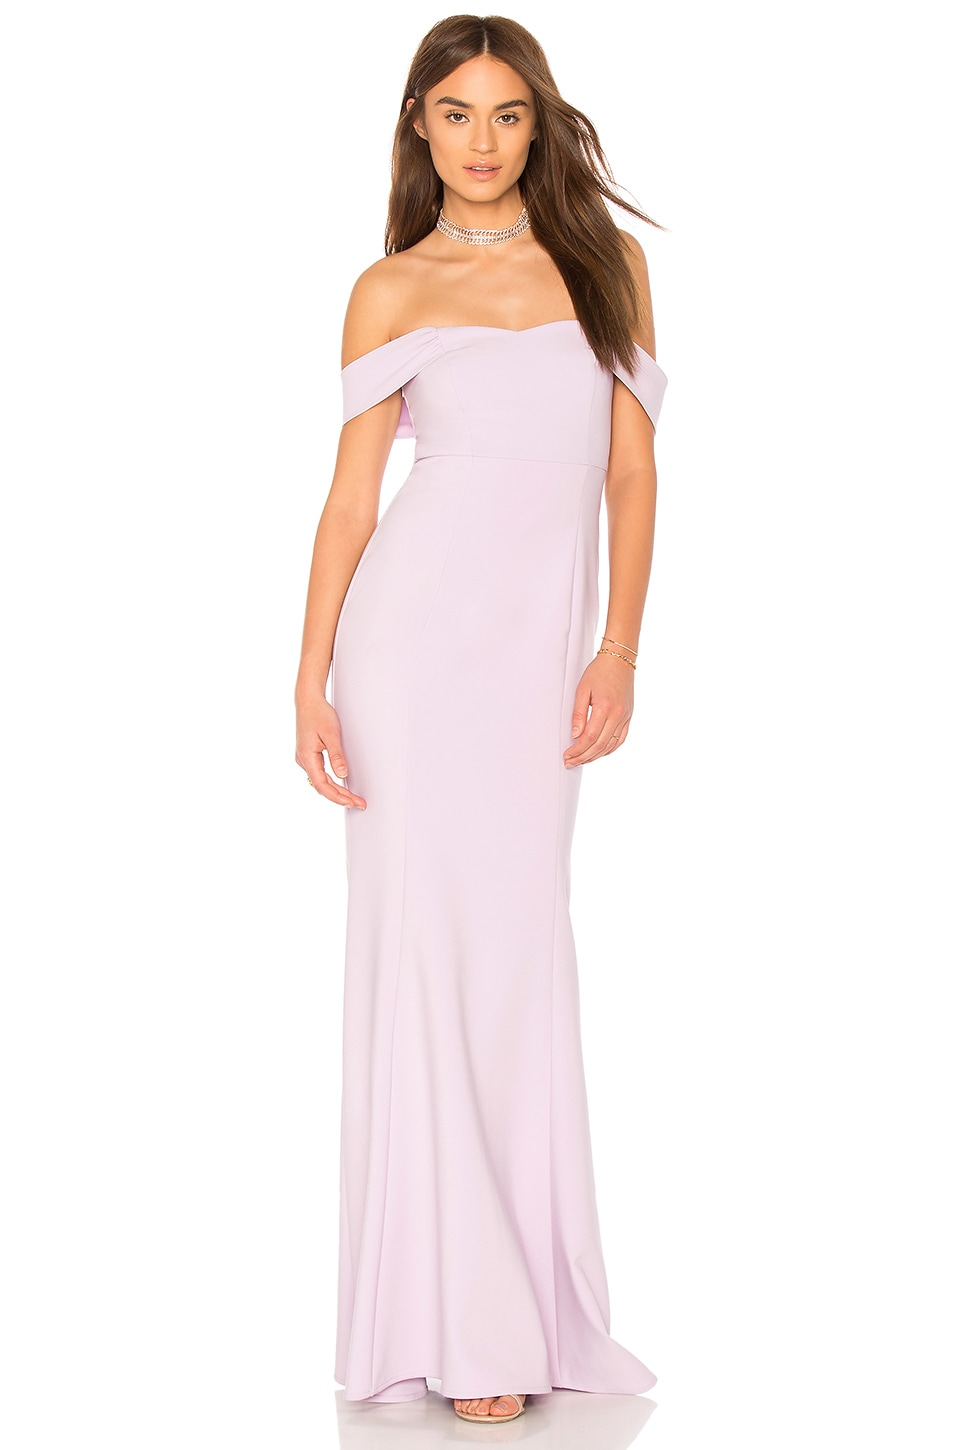 LIKELY x Revolve Bartolli Gown in Orchid Bloom